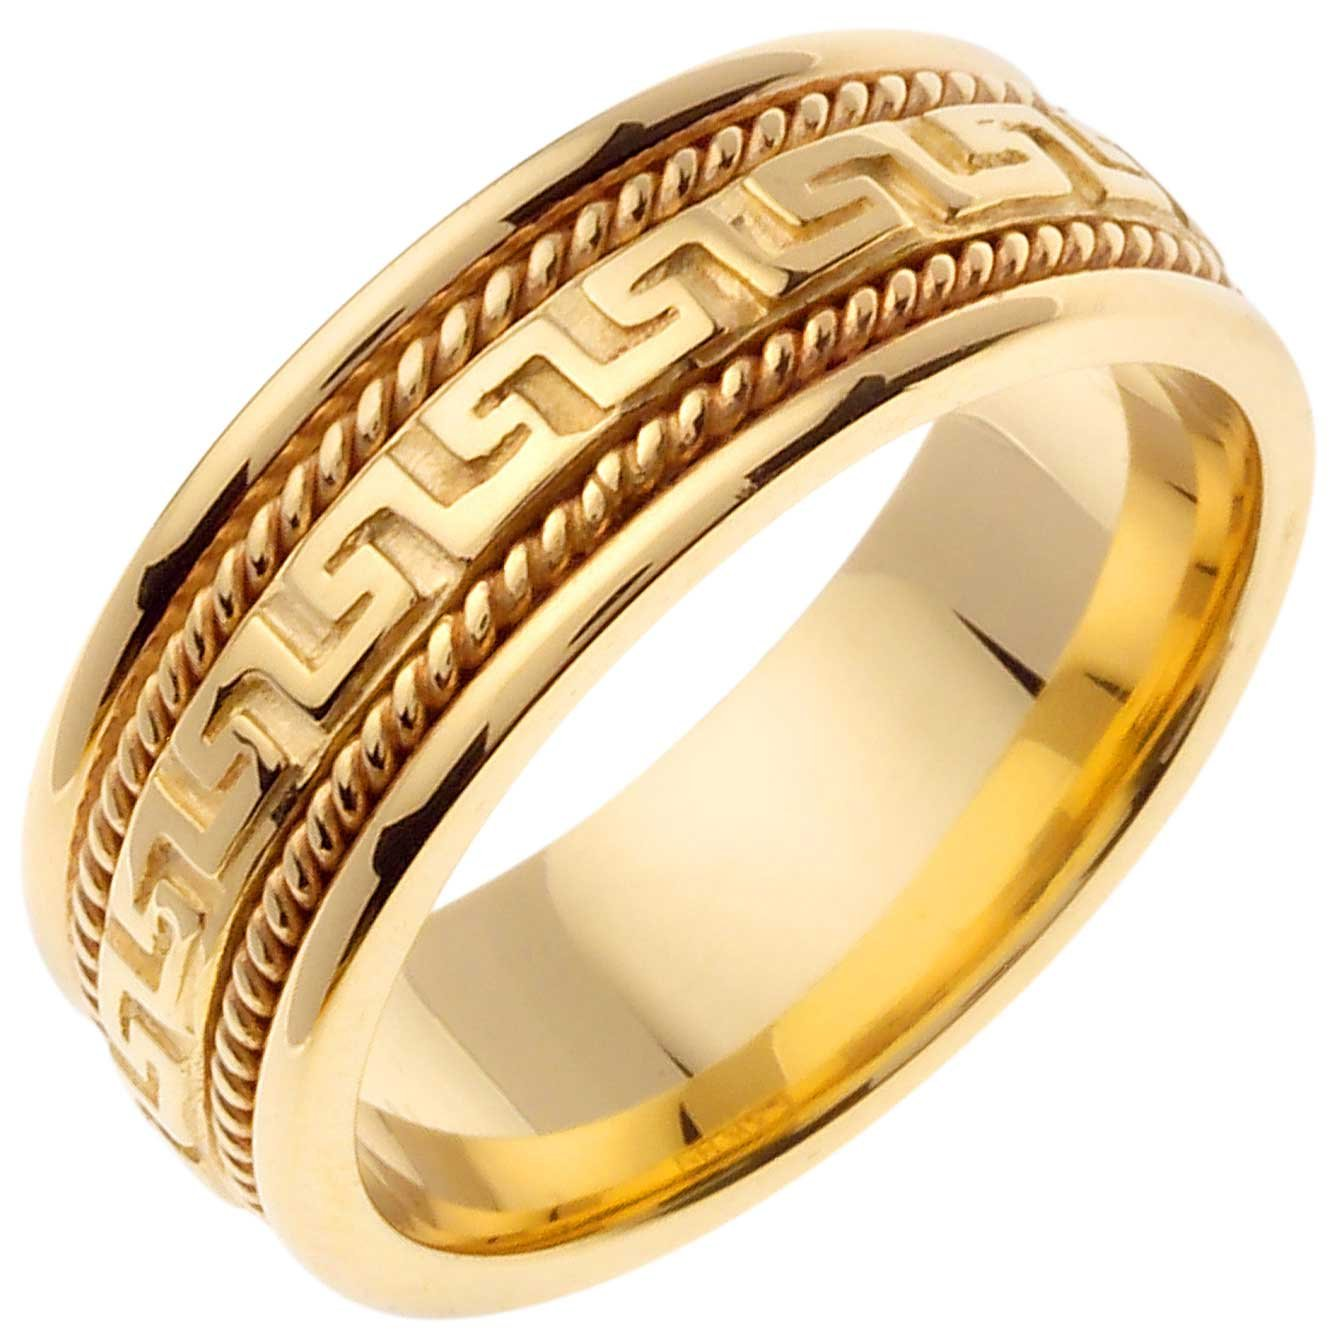 14K Gold Designer Greek Key Women's Comfort Fit Wedding Band (8mm) Size-6.5c1